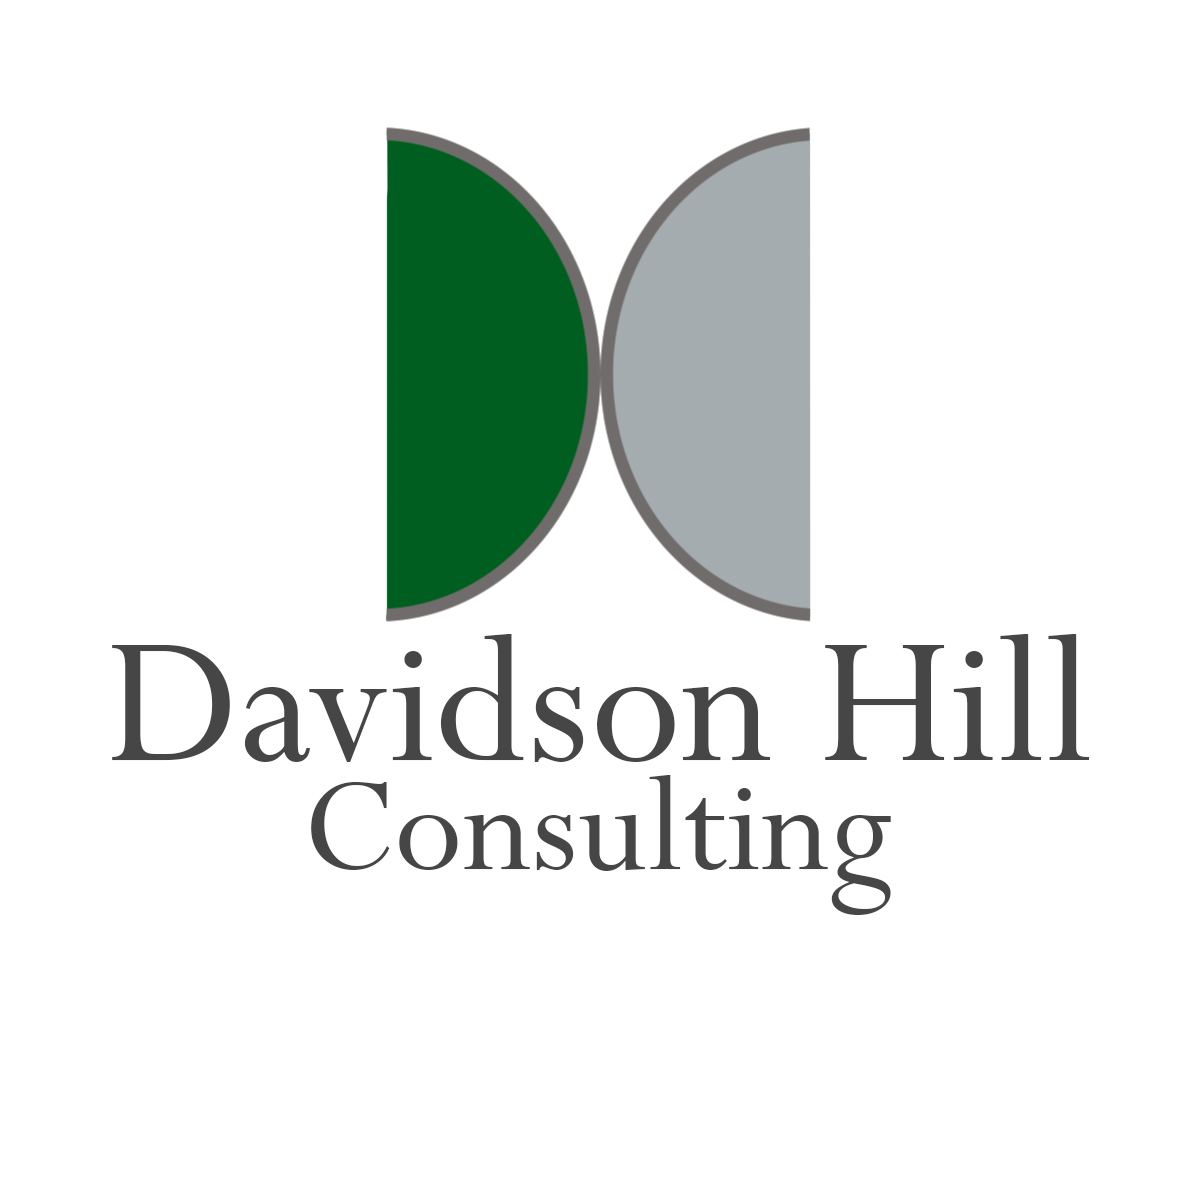 Davidson Hill Consulting